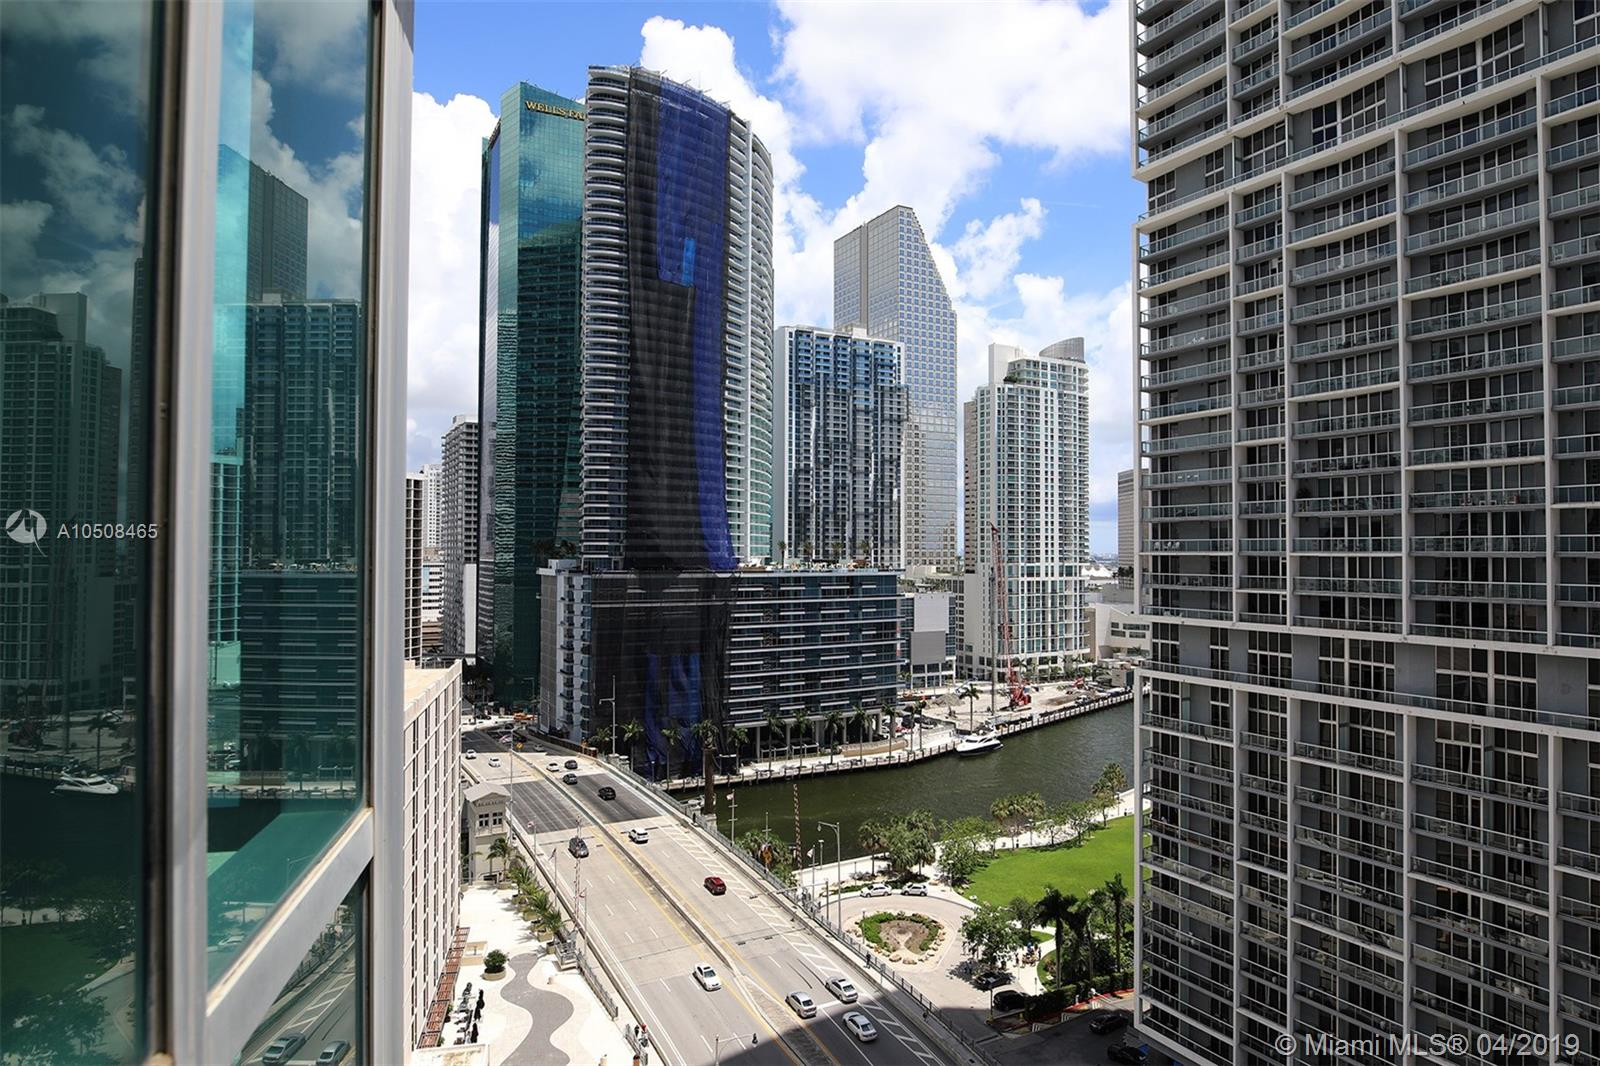 500 Brickell Avenue and 55 SE 6 Street, Miami, FL 33131, 500 Brickell #1801, Brickell, Miami A10508465 image #4